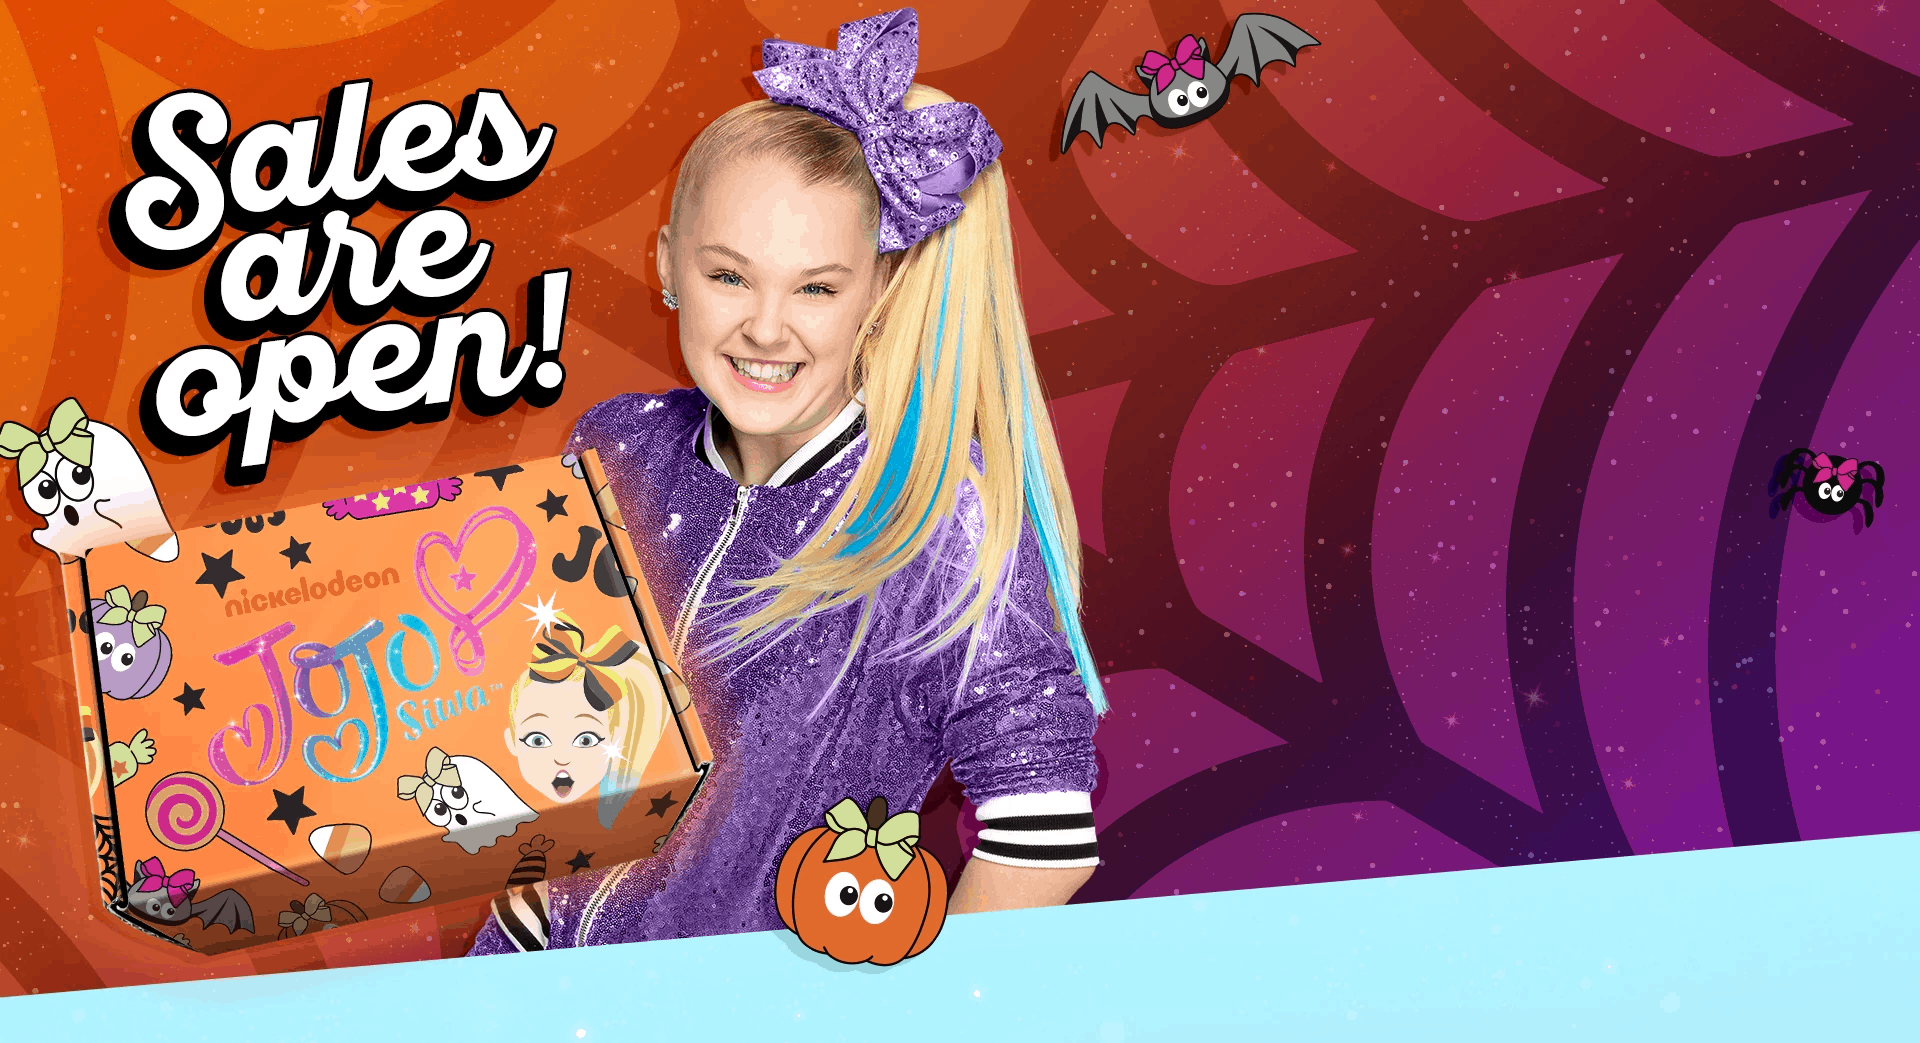 The Jojo Siwa Fall 2019 Box Full Spoilers!